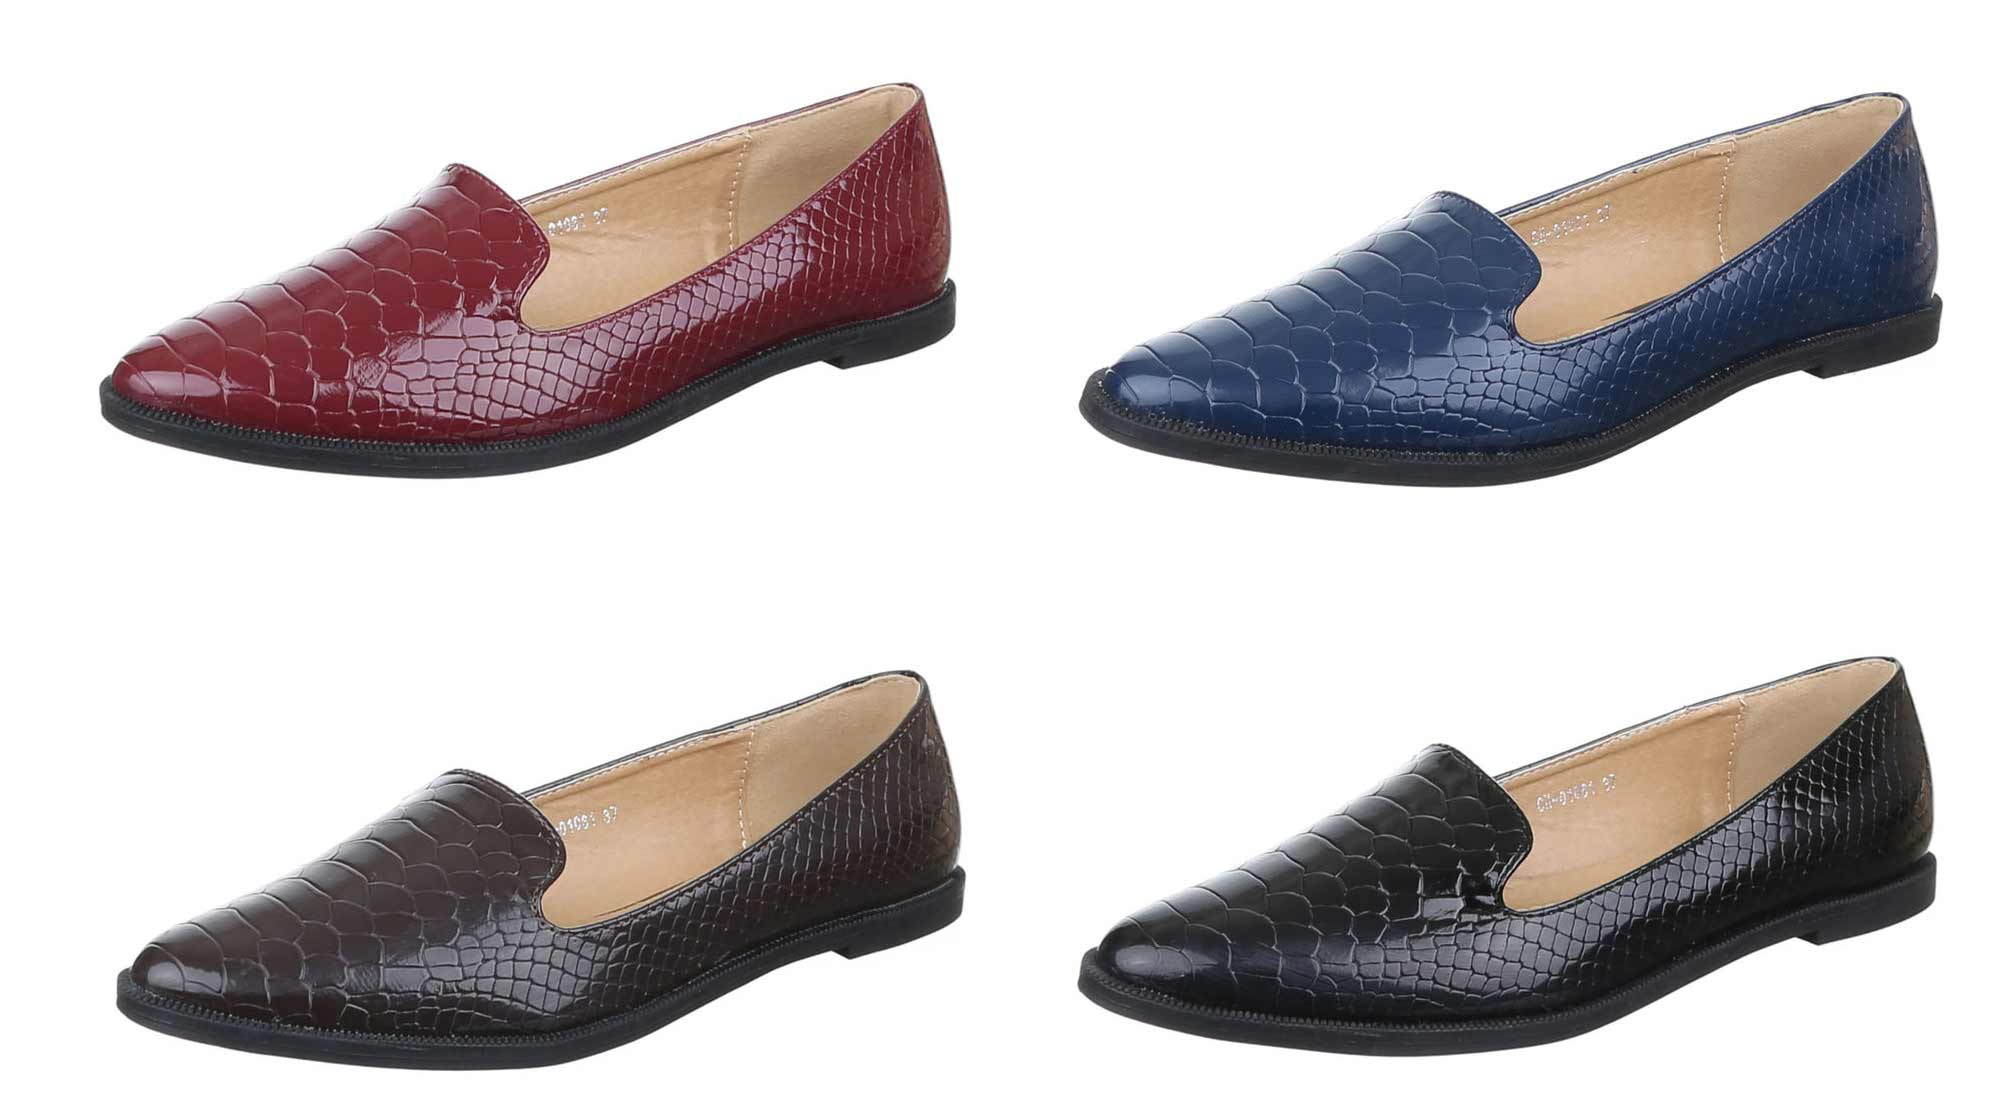 smarte slipper damen tassel loafer schuhe kroko style lack halbschuhe 36 41 ebay. Black Bedroom Furniture Sets. Home Design Ideas